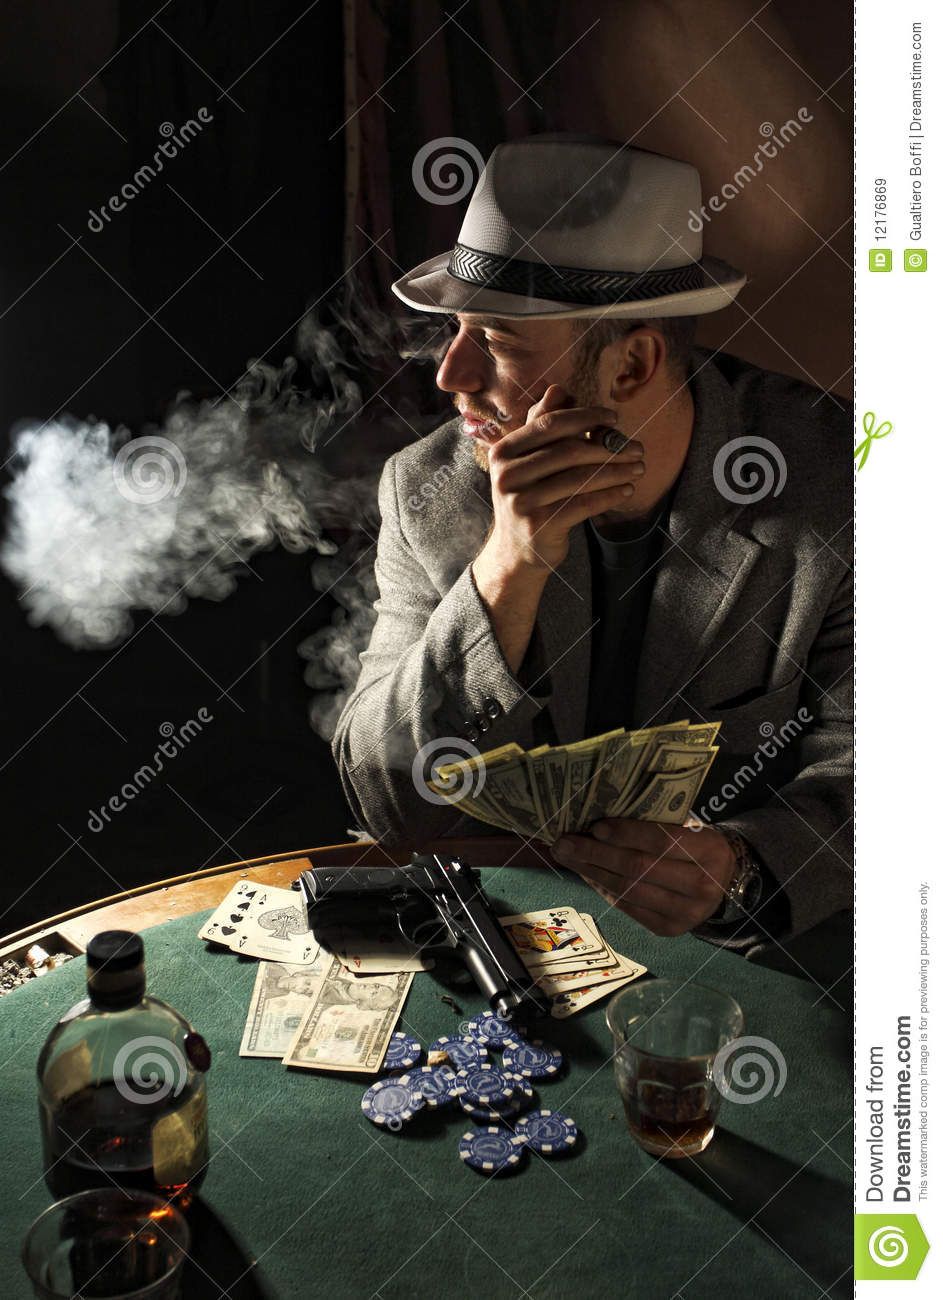 Download Cute Cartoon Couple Wallpapers Gangster Smoking And Play Poker Royalty Free Stock Images